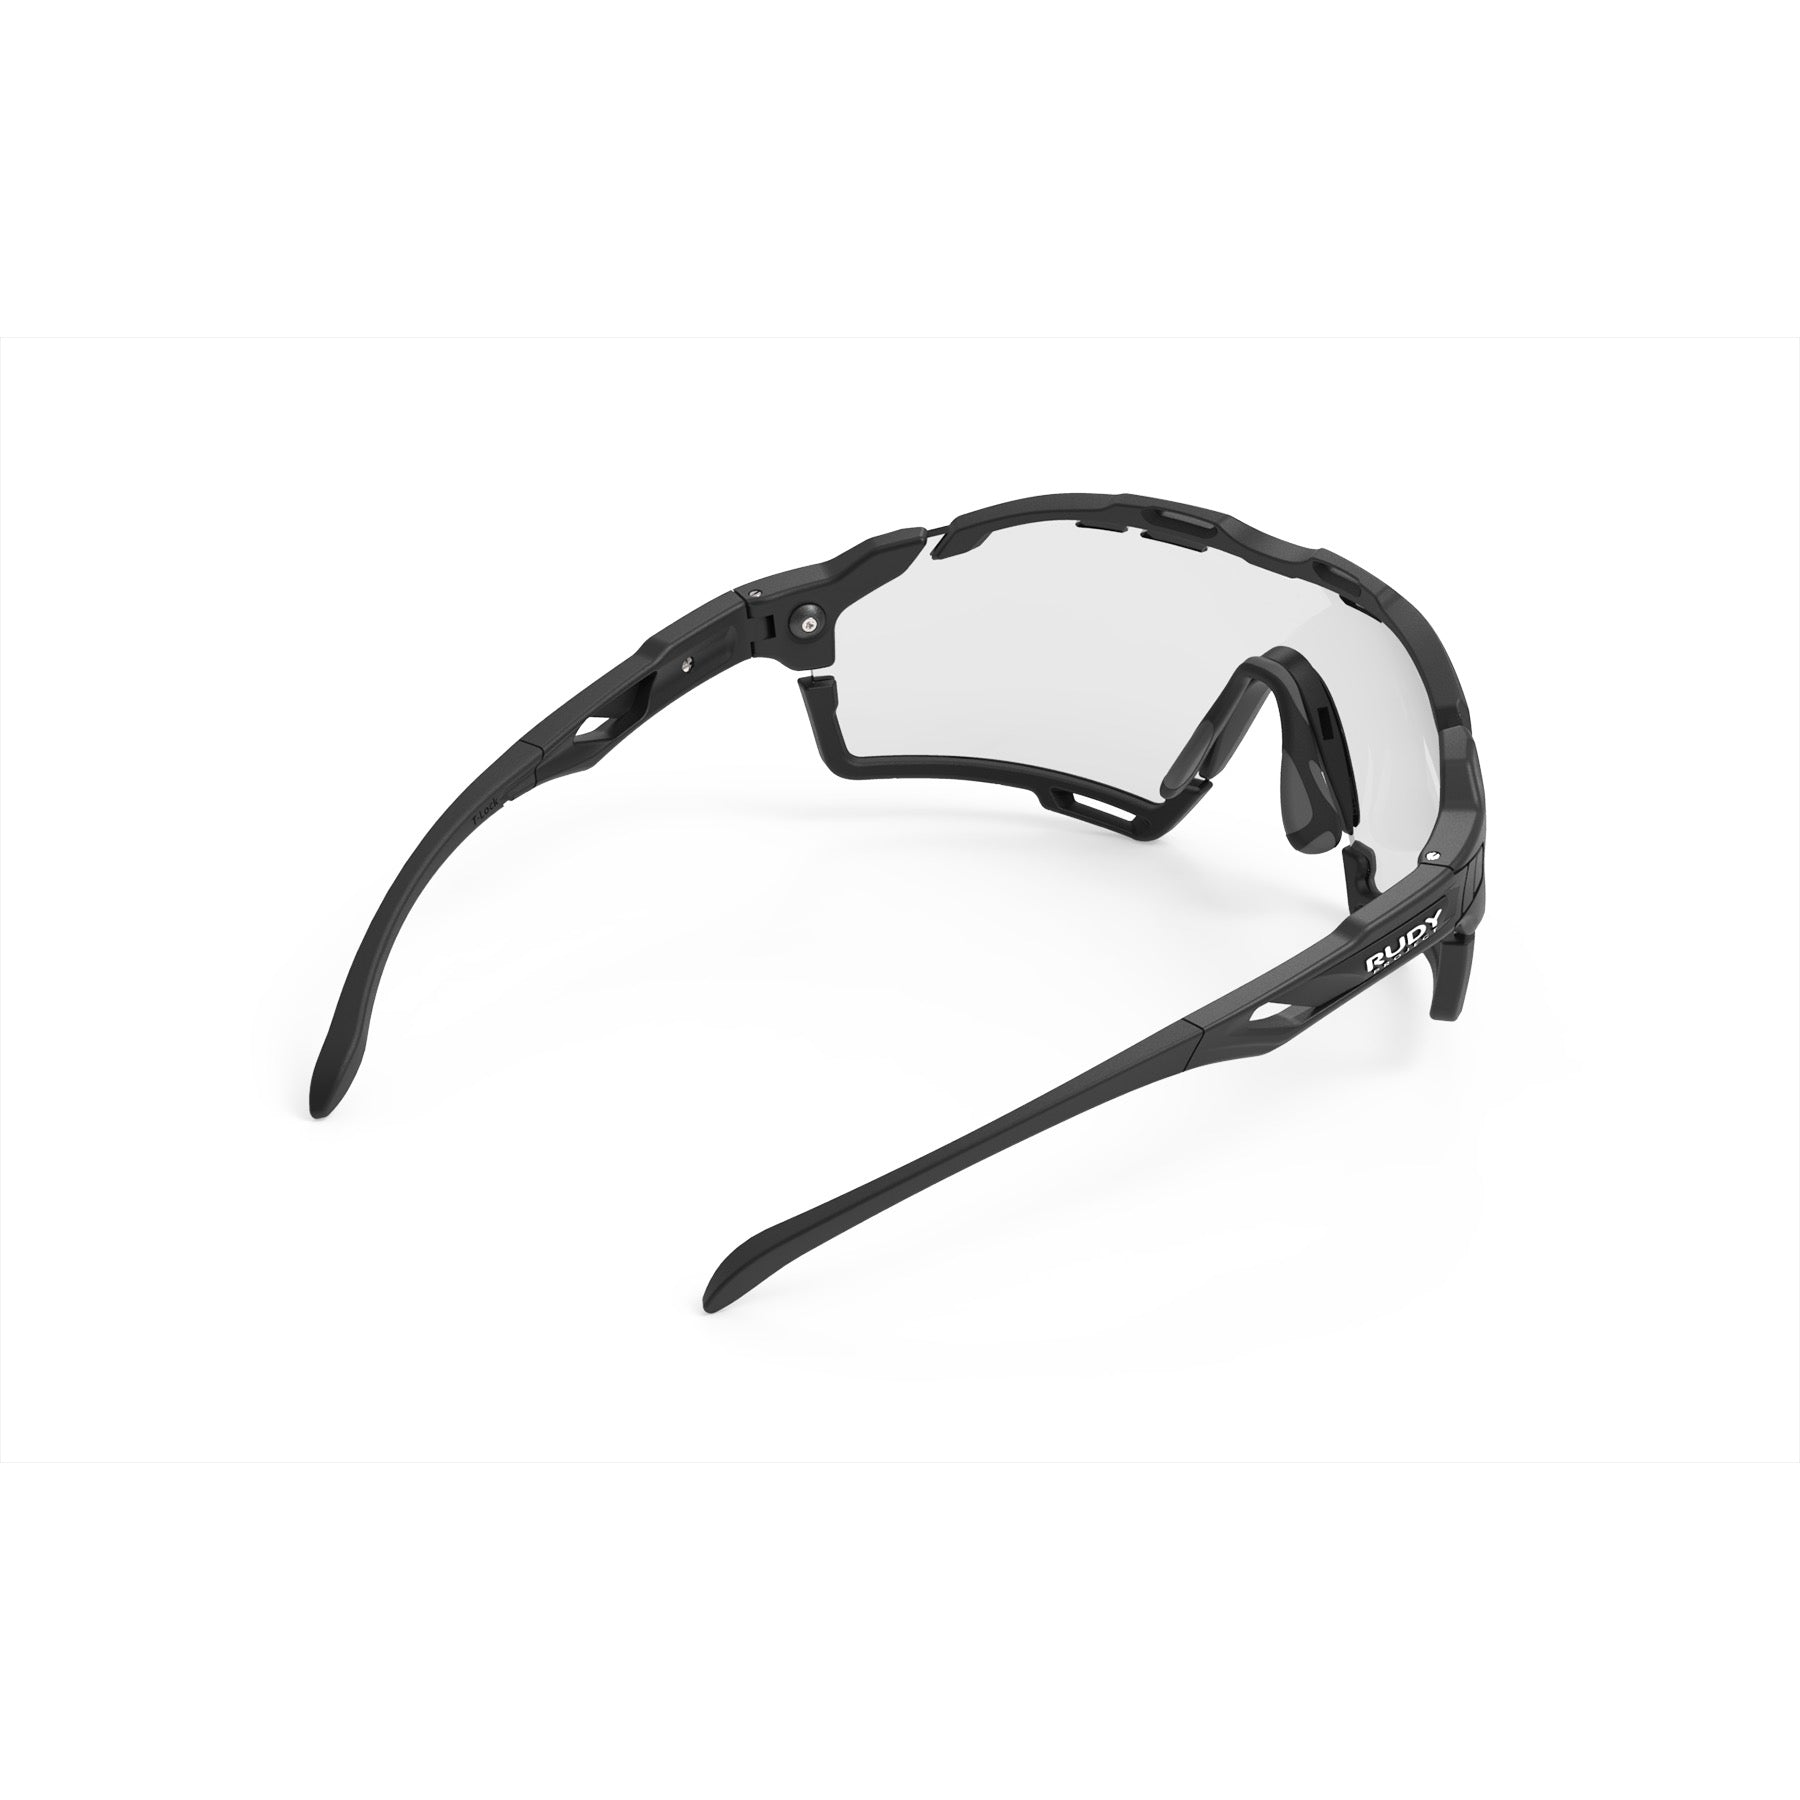 Rudy Project - Cutline - frame color: Matte Black - lens color: ImpactX-2 Photochromic Clear to Black - Bumper Color: Black - photo angle: Top Back Angle Variant Hover Image